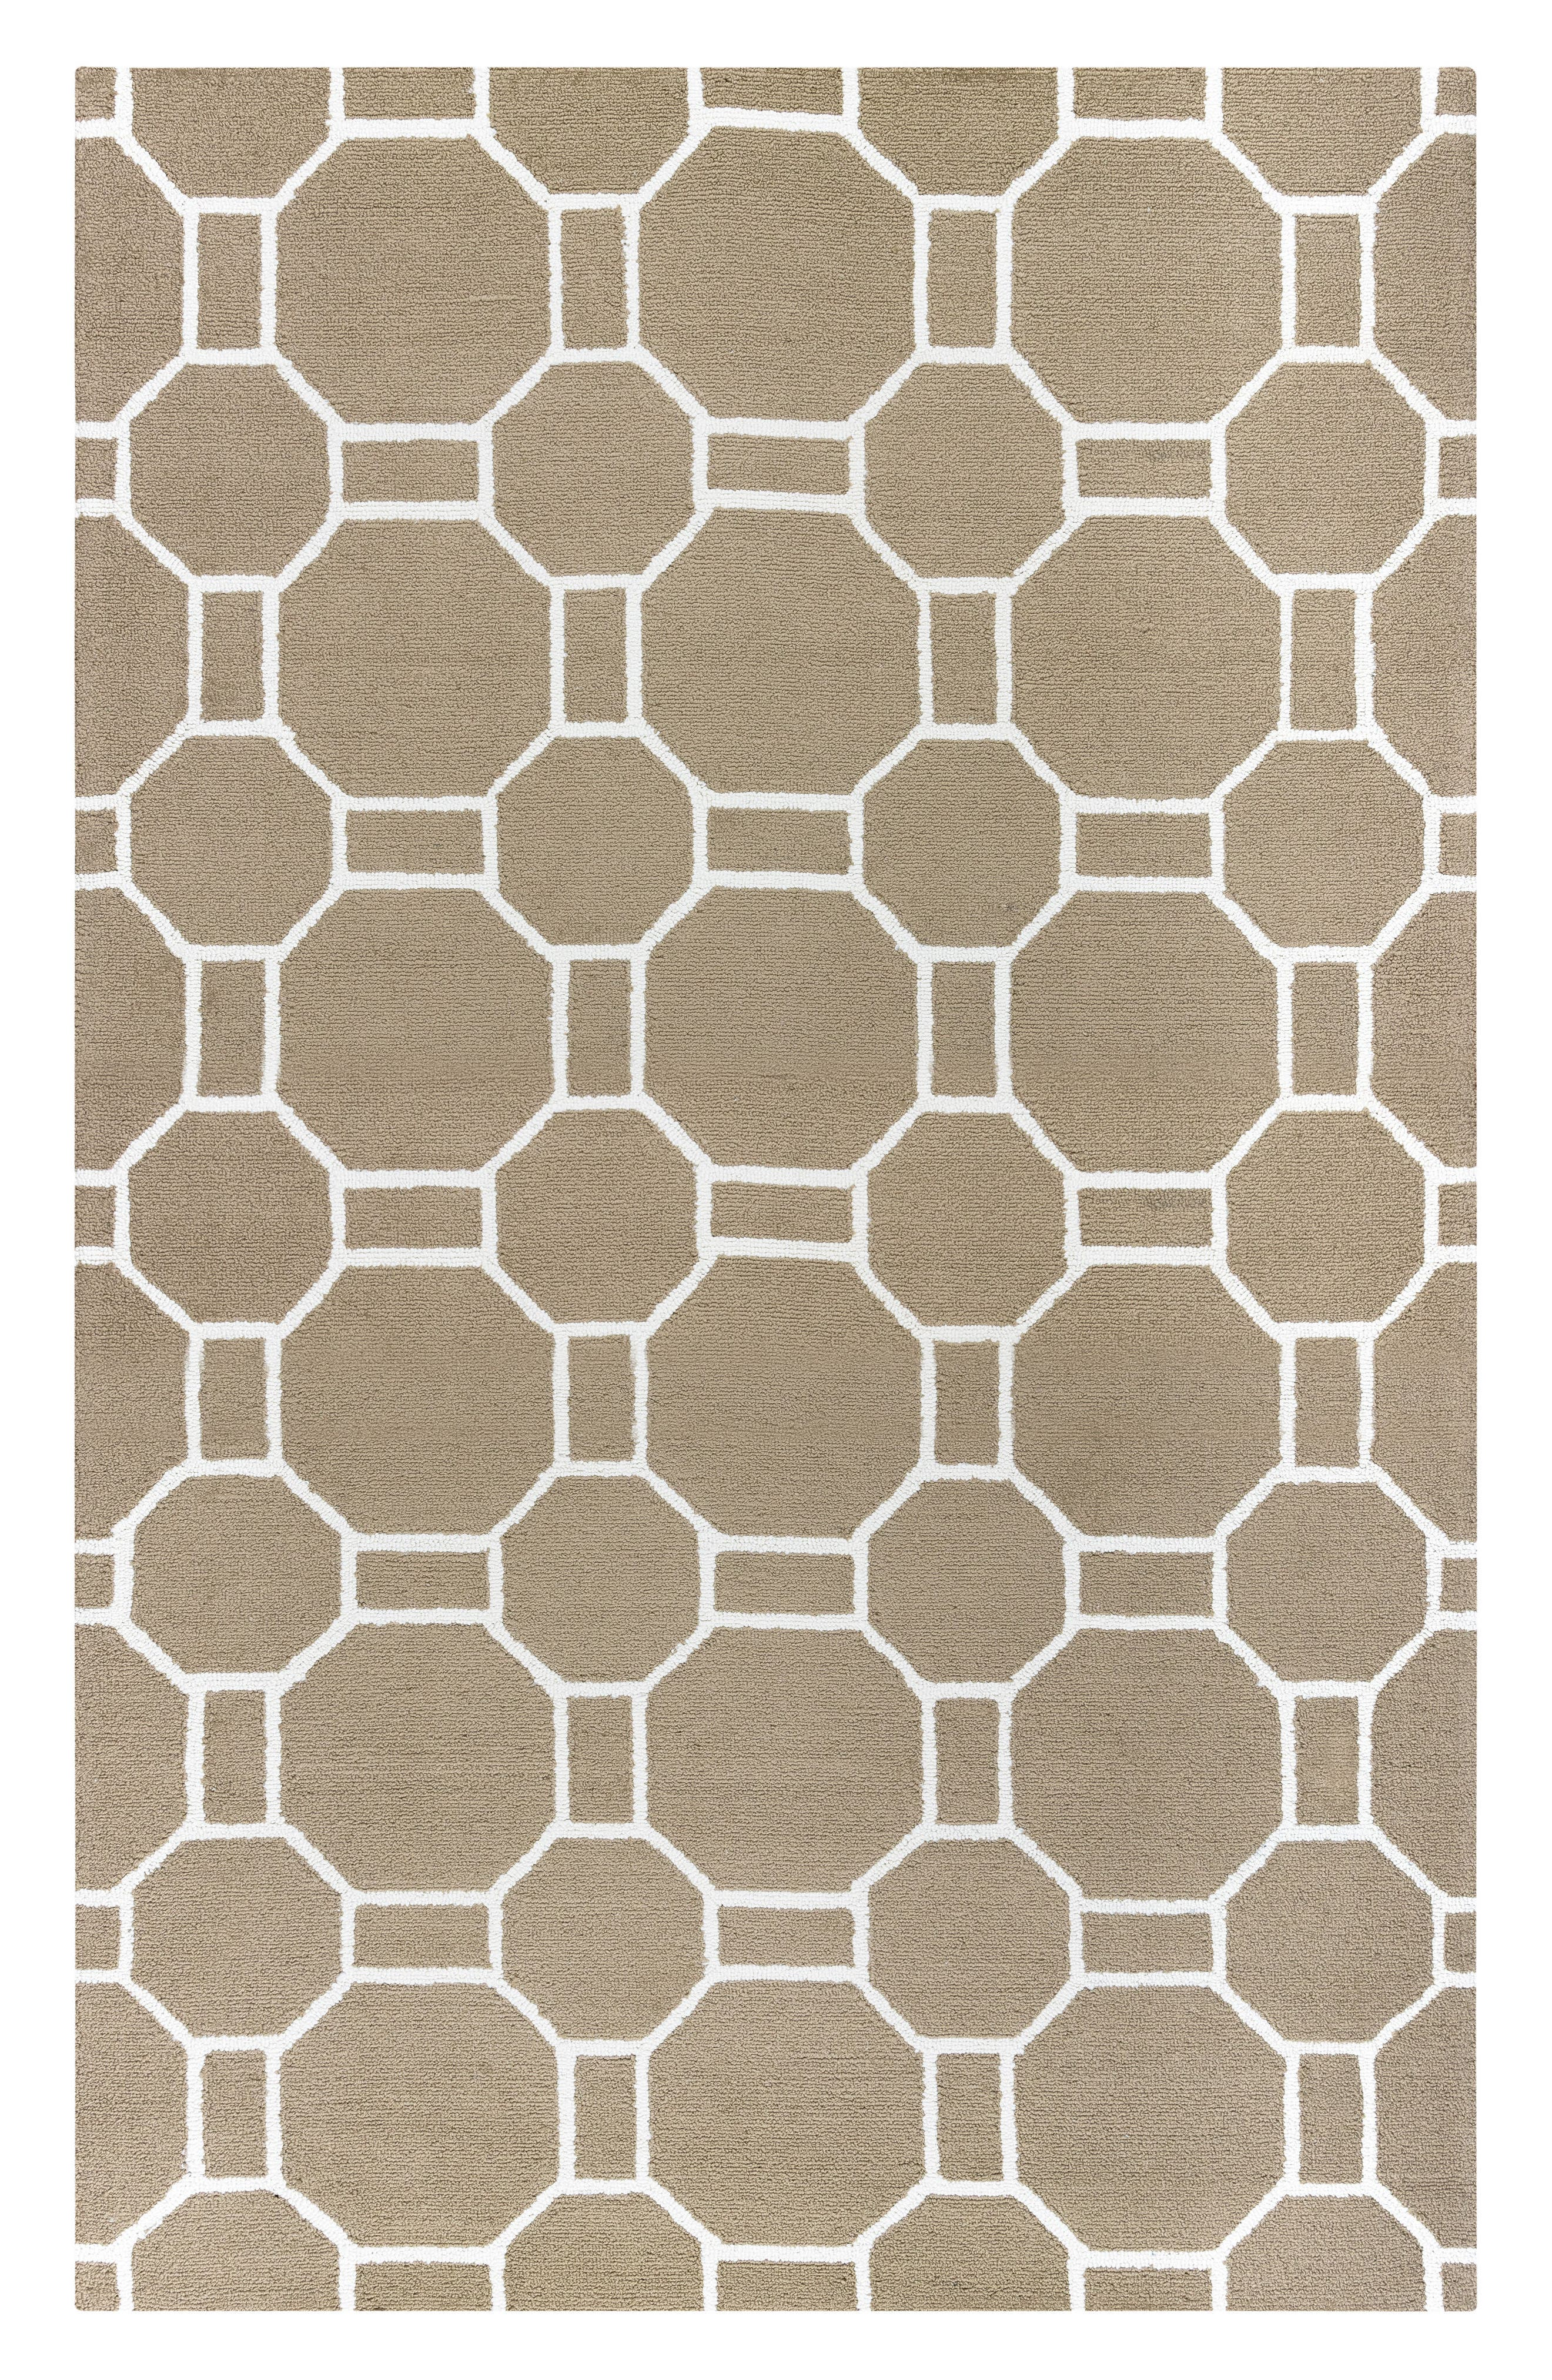 Azzura Hill Felicia Rug,                         Main,                         color, Beige